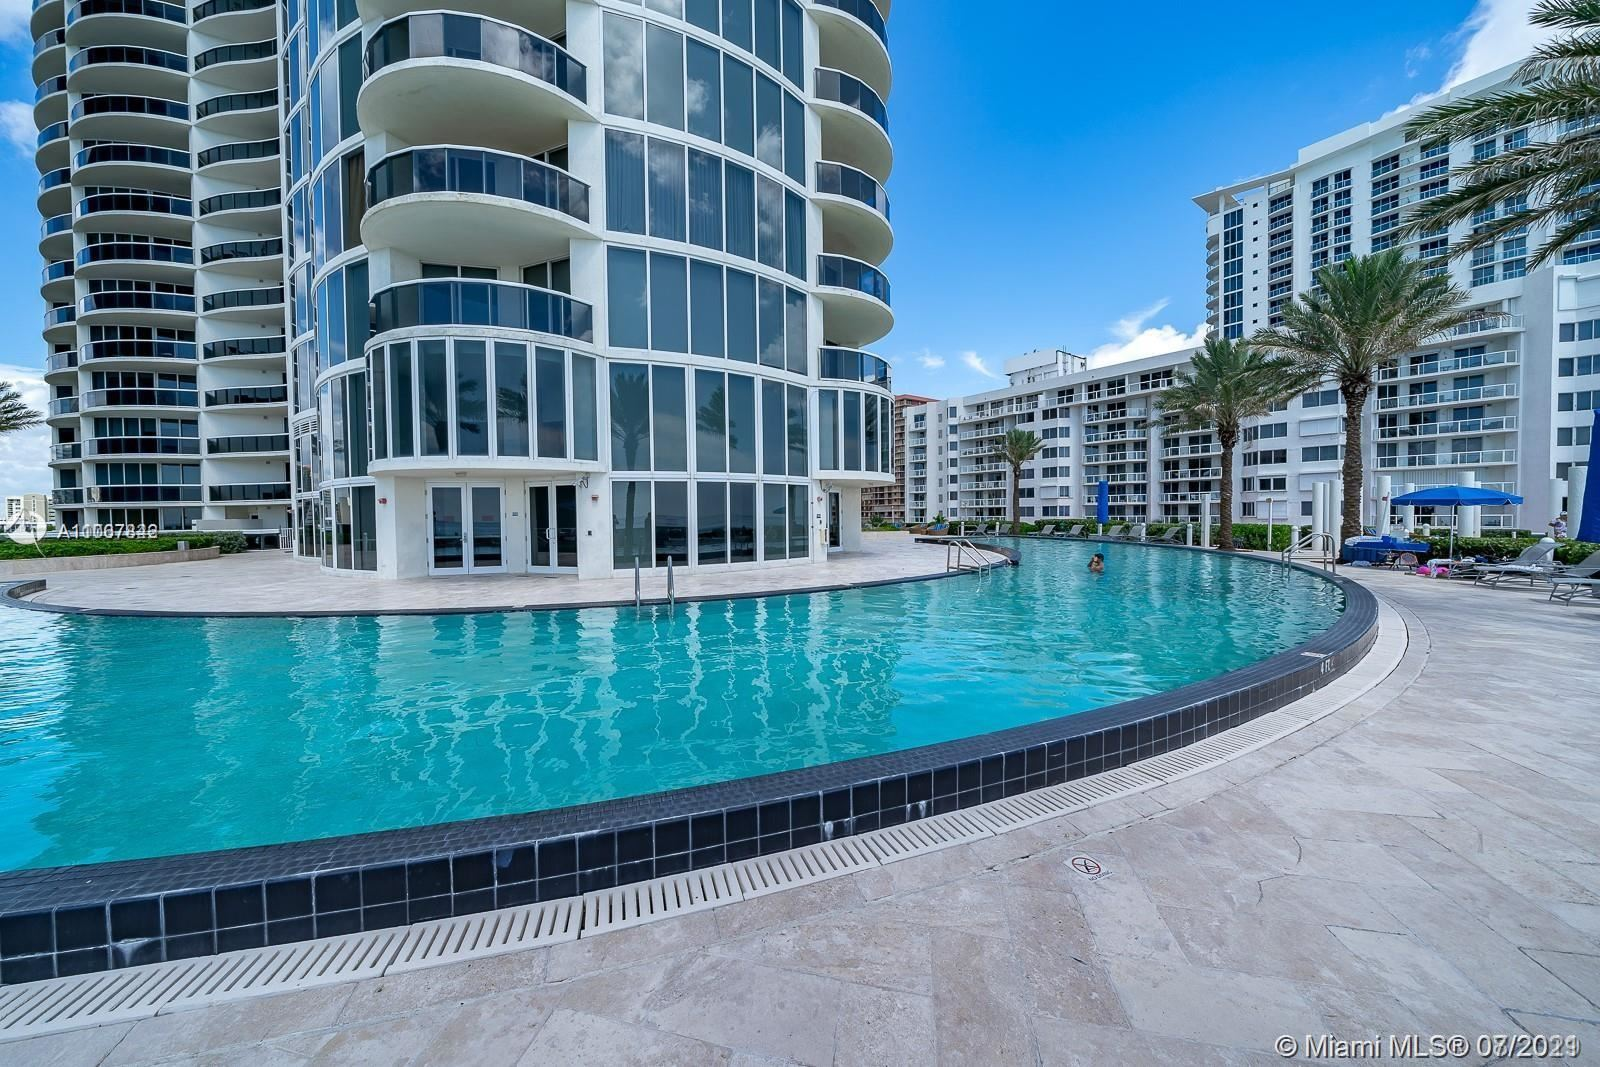 17201 Collins Ave #2902, Sunny Isles, FL 33160 - #: A11067842